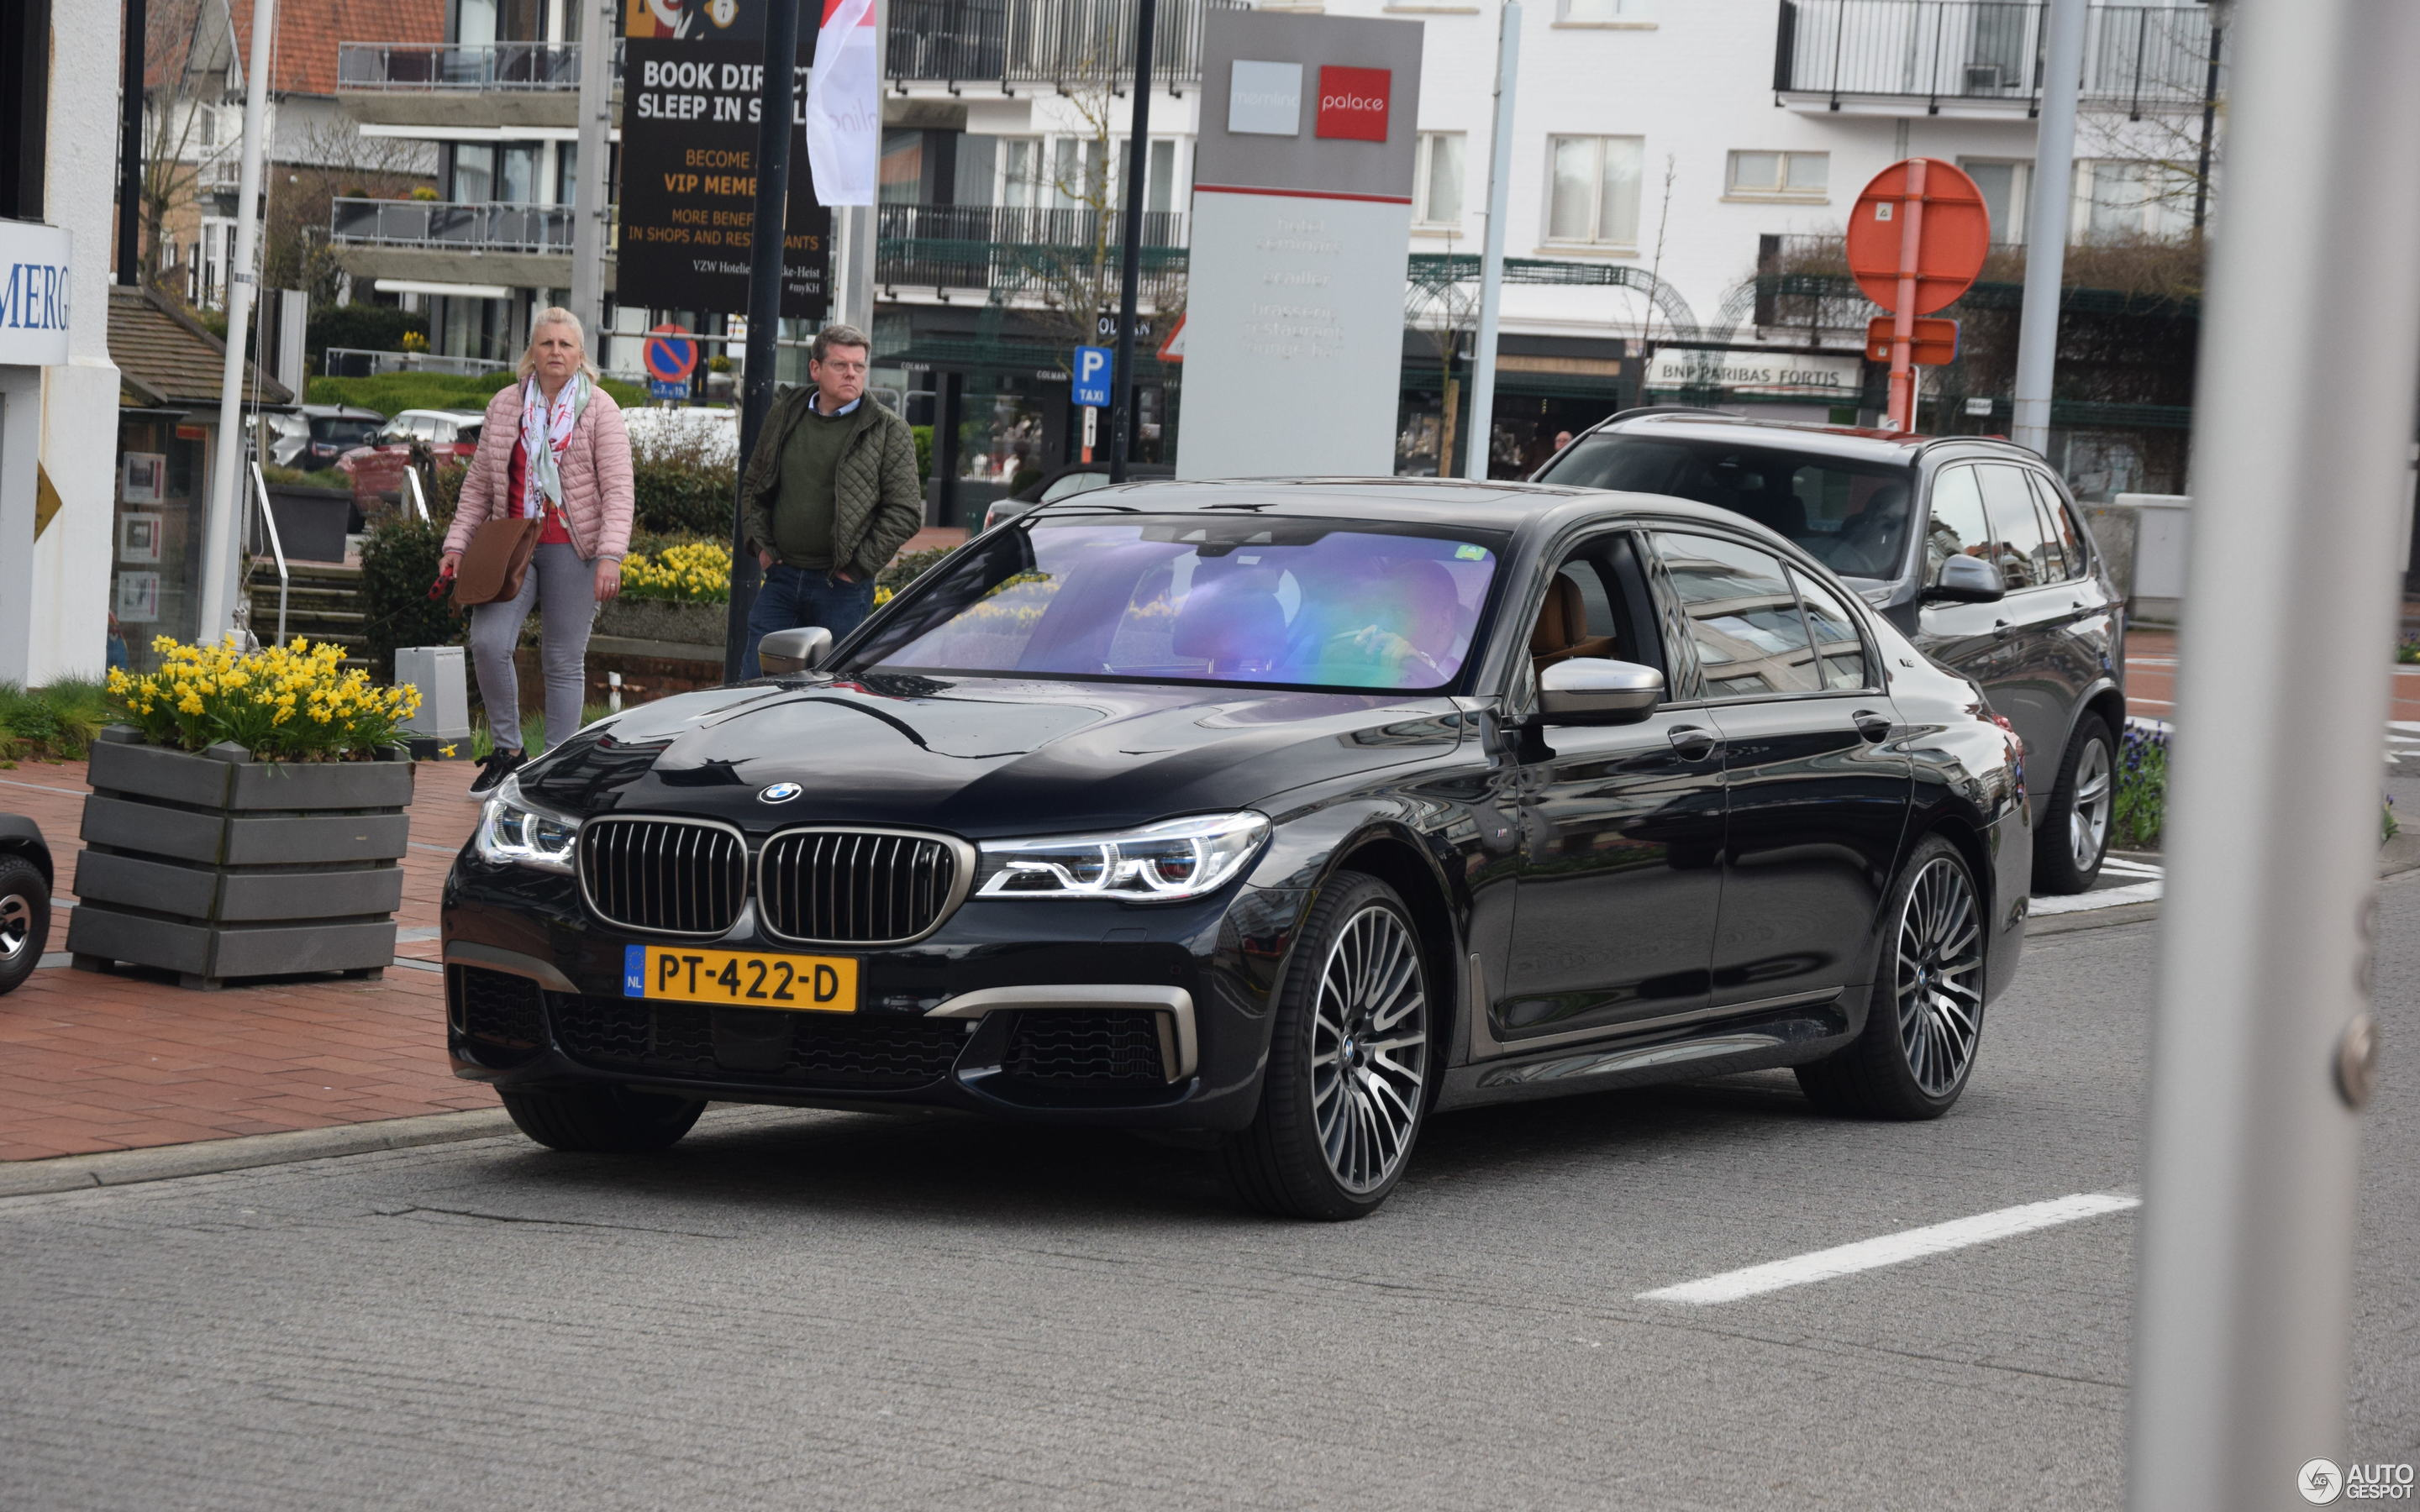 The New Bmw 7 Series Doesn T Look Half Bad After A Nose Job